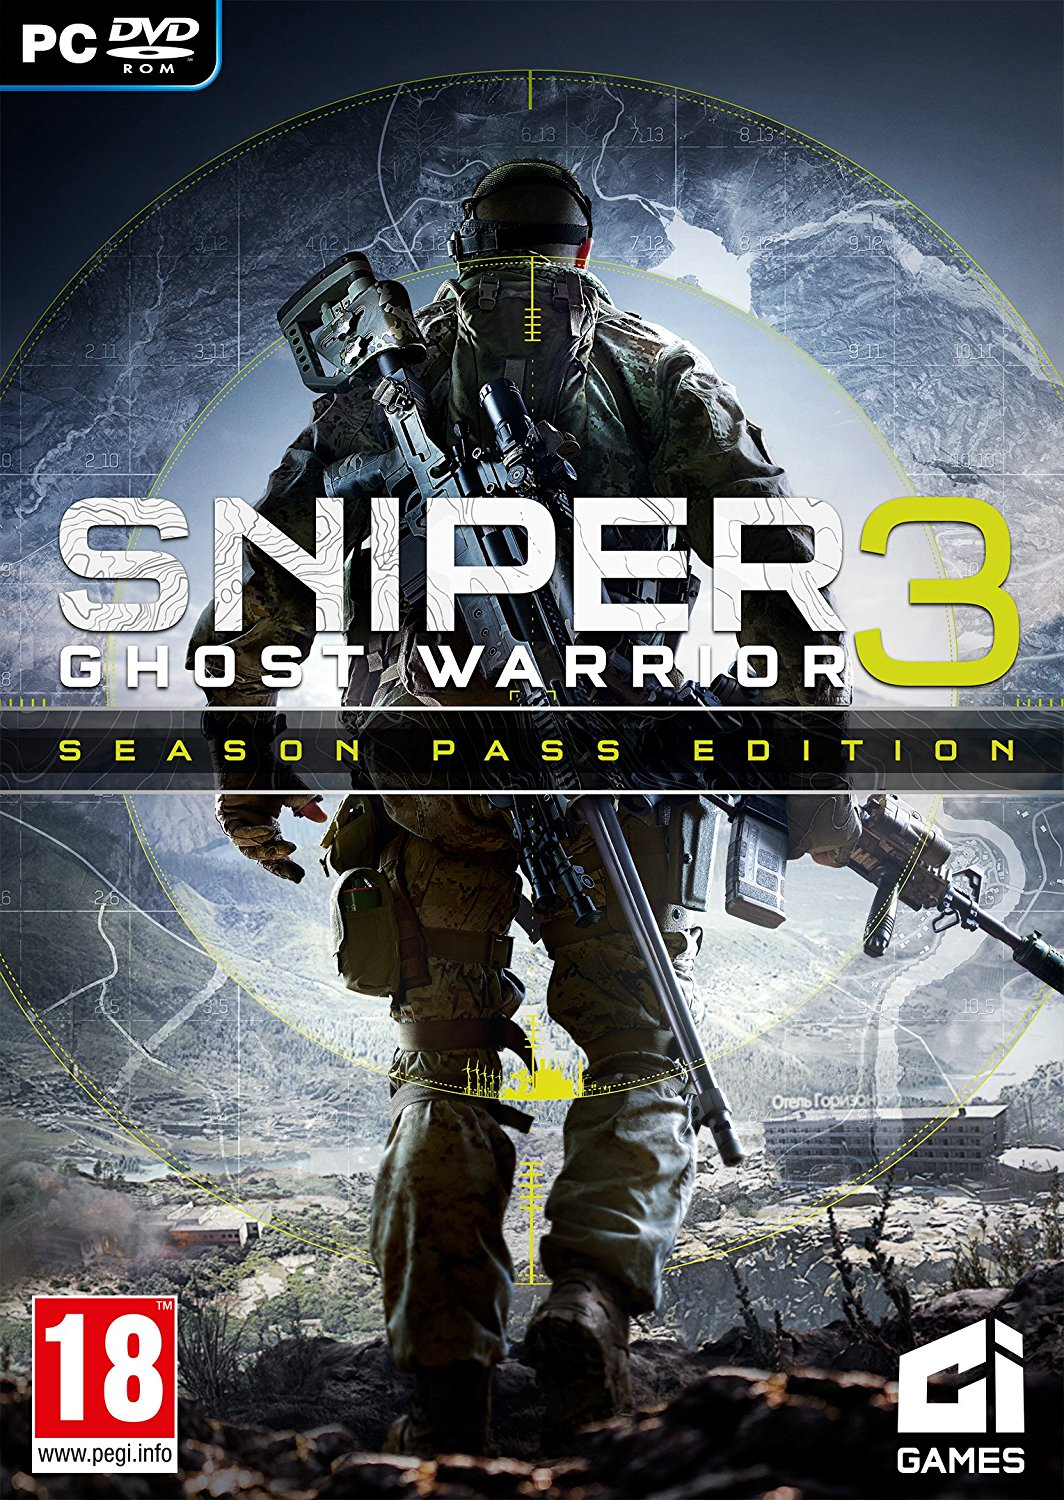 Poster for Sniper: Ghost Warrior 3